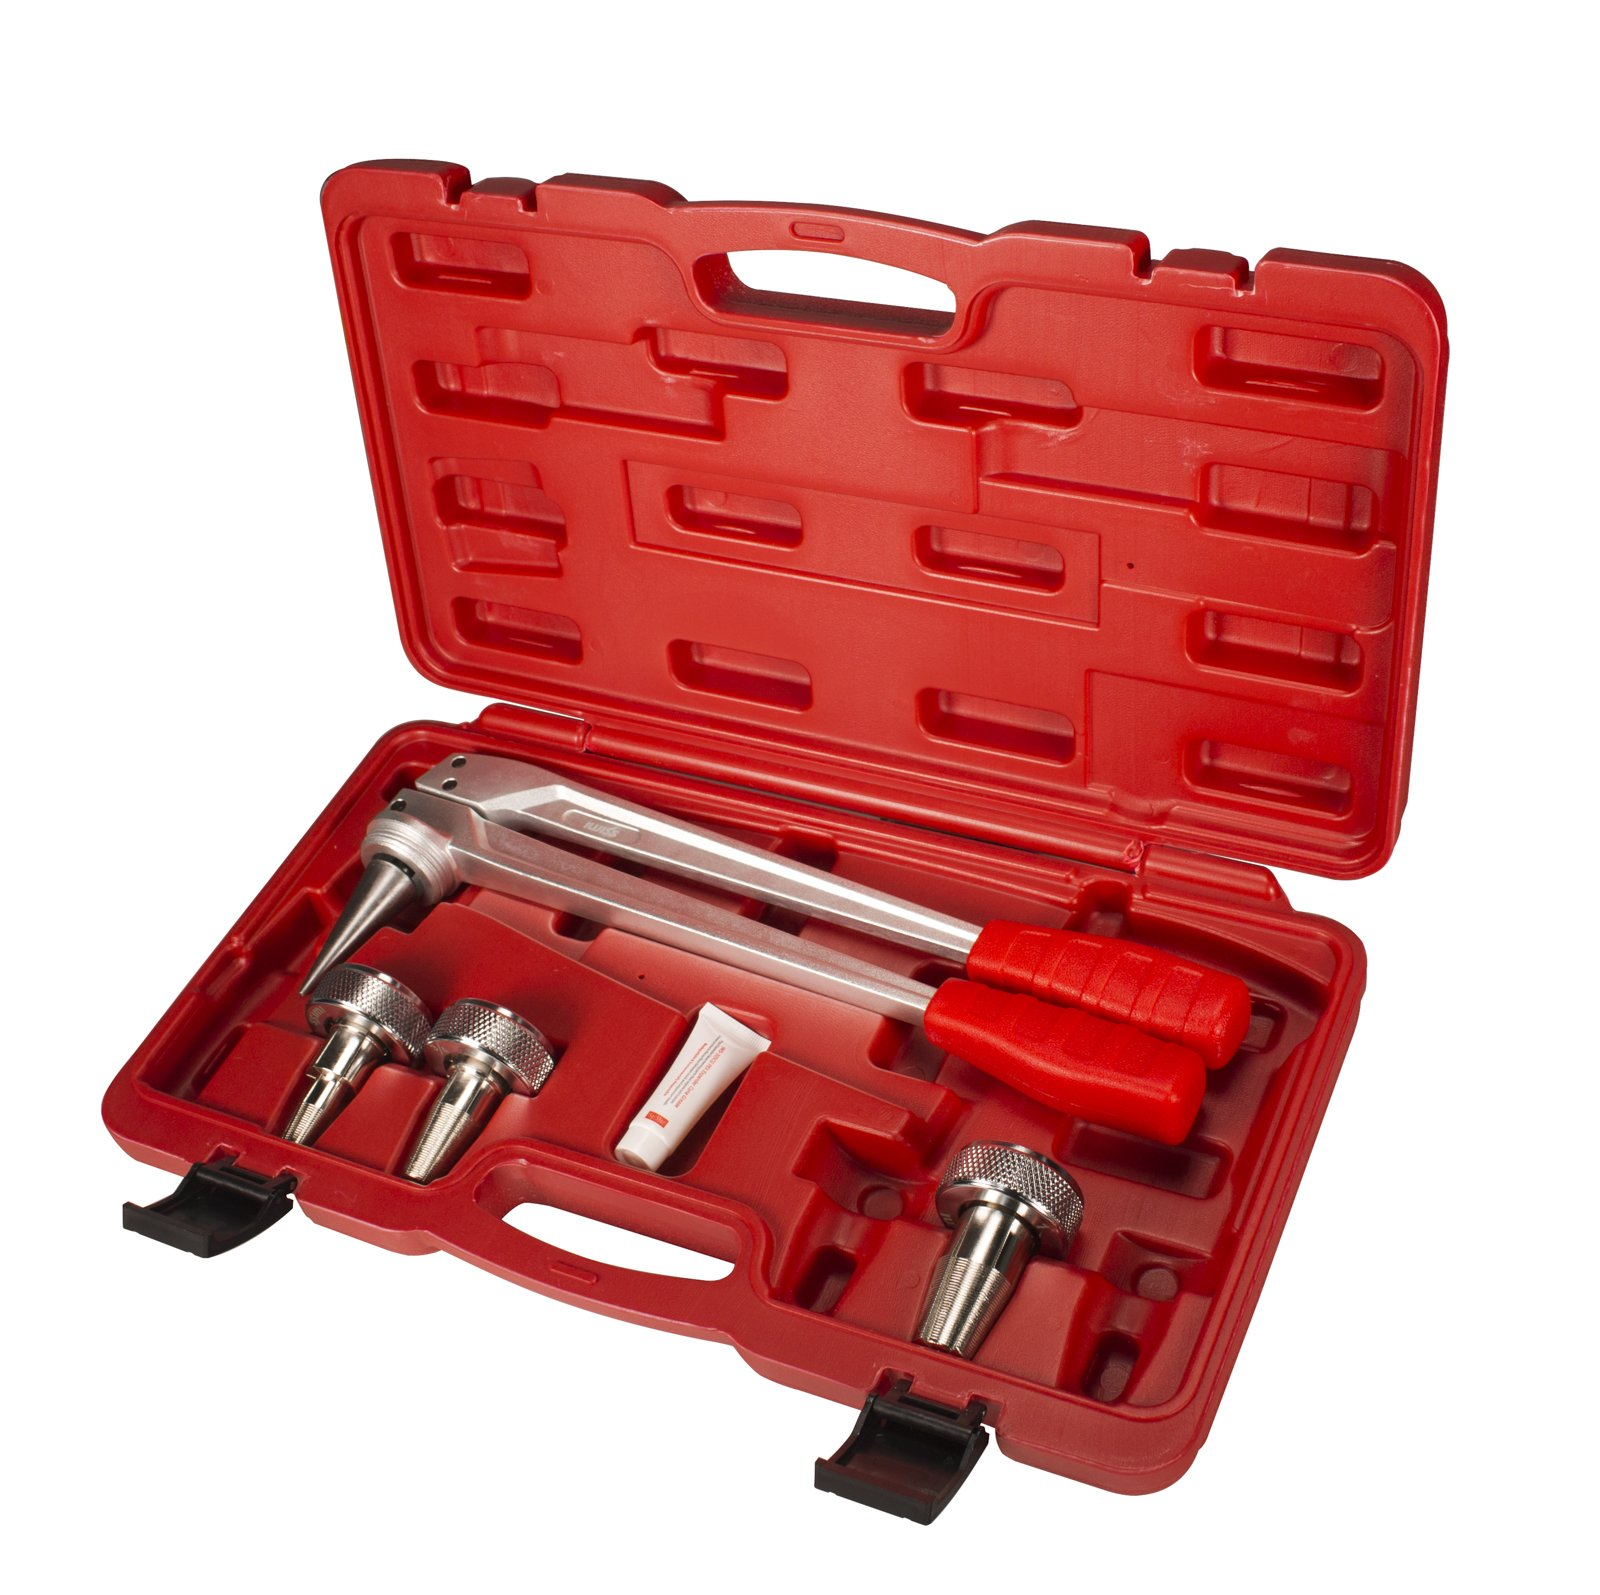 IWISS F1960 PEX Pipe Expansion Manual Tool Kit With 1/2'' To 1'' Expansion Heads by IWISS Electric Co.,Ltd